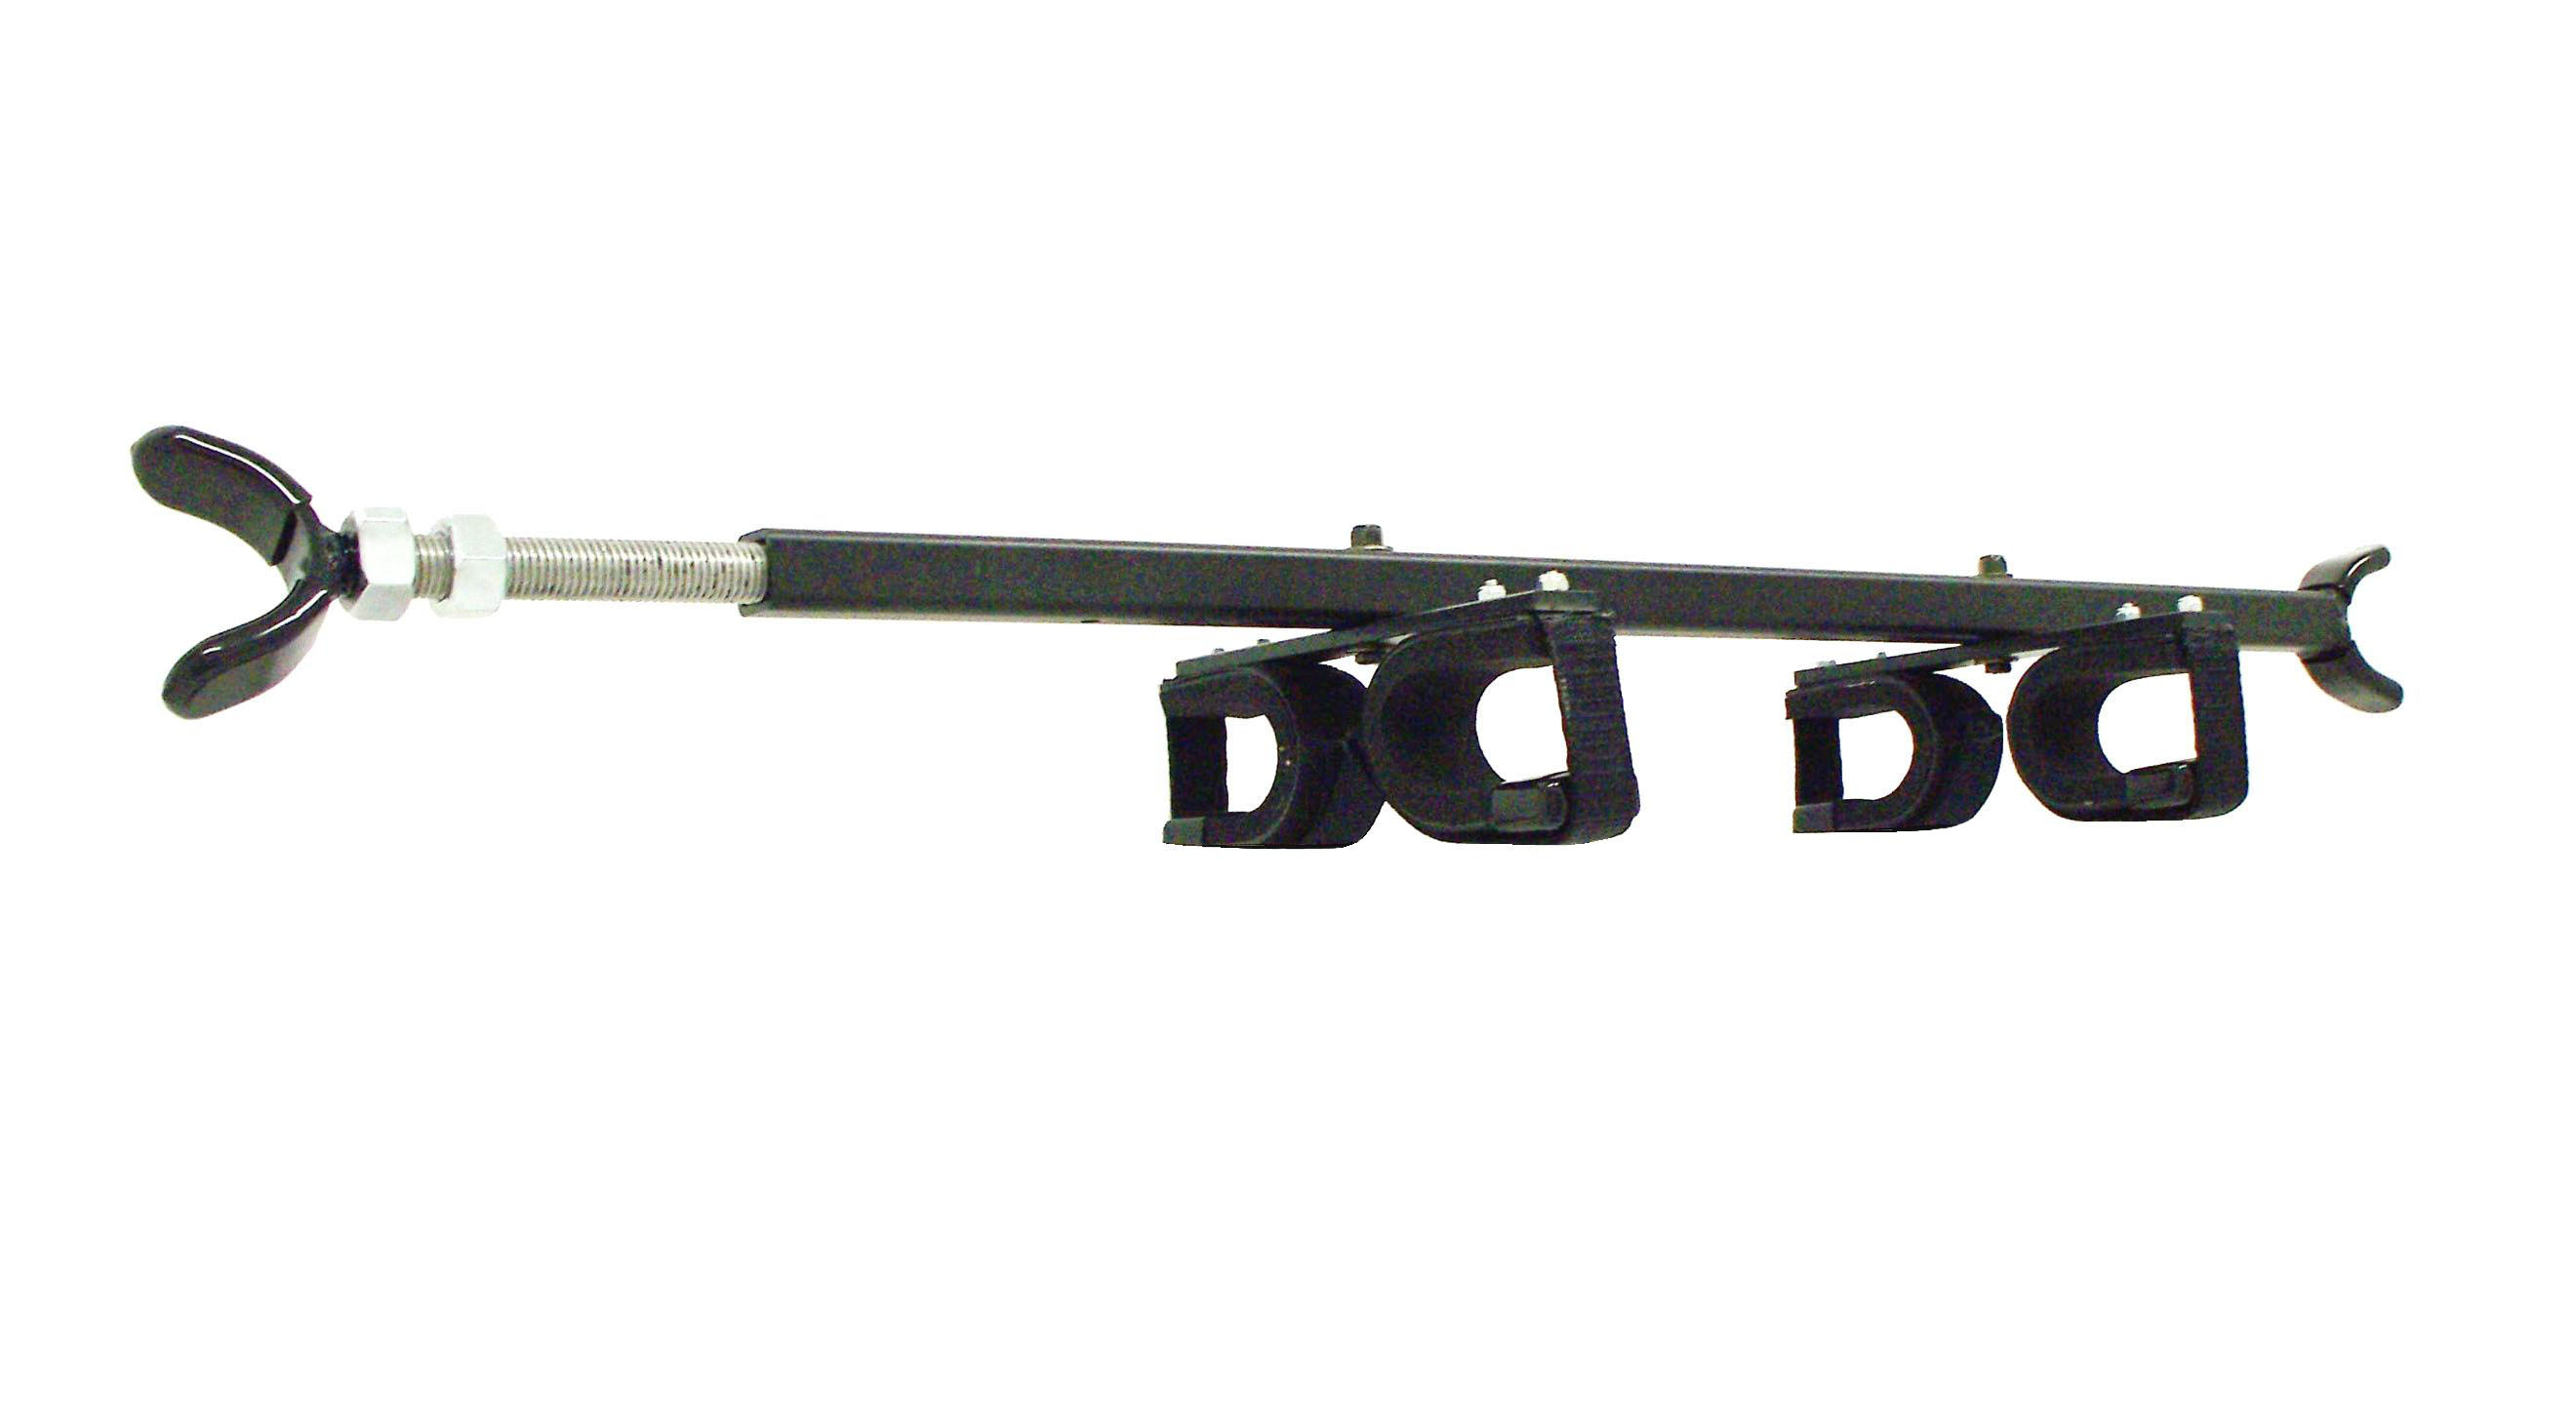 "QuickDraw QD853-OGR Gun Rack fits FRONT to BACK measurements of 35"" - 42"""